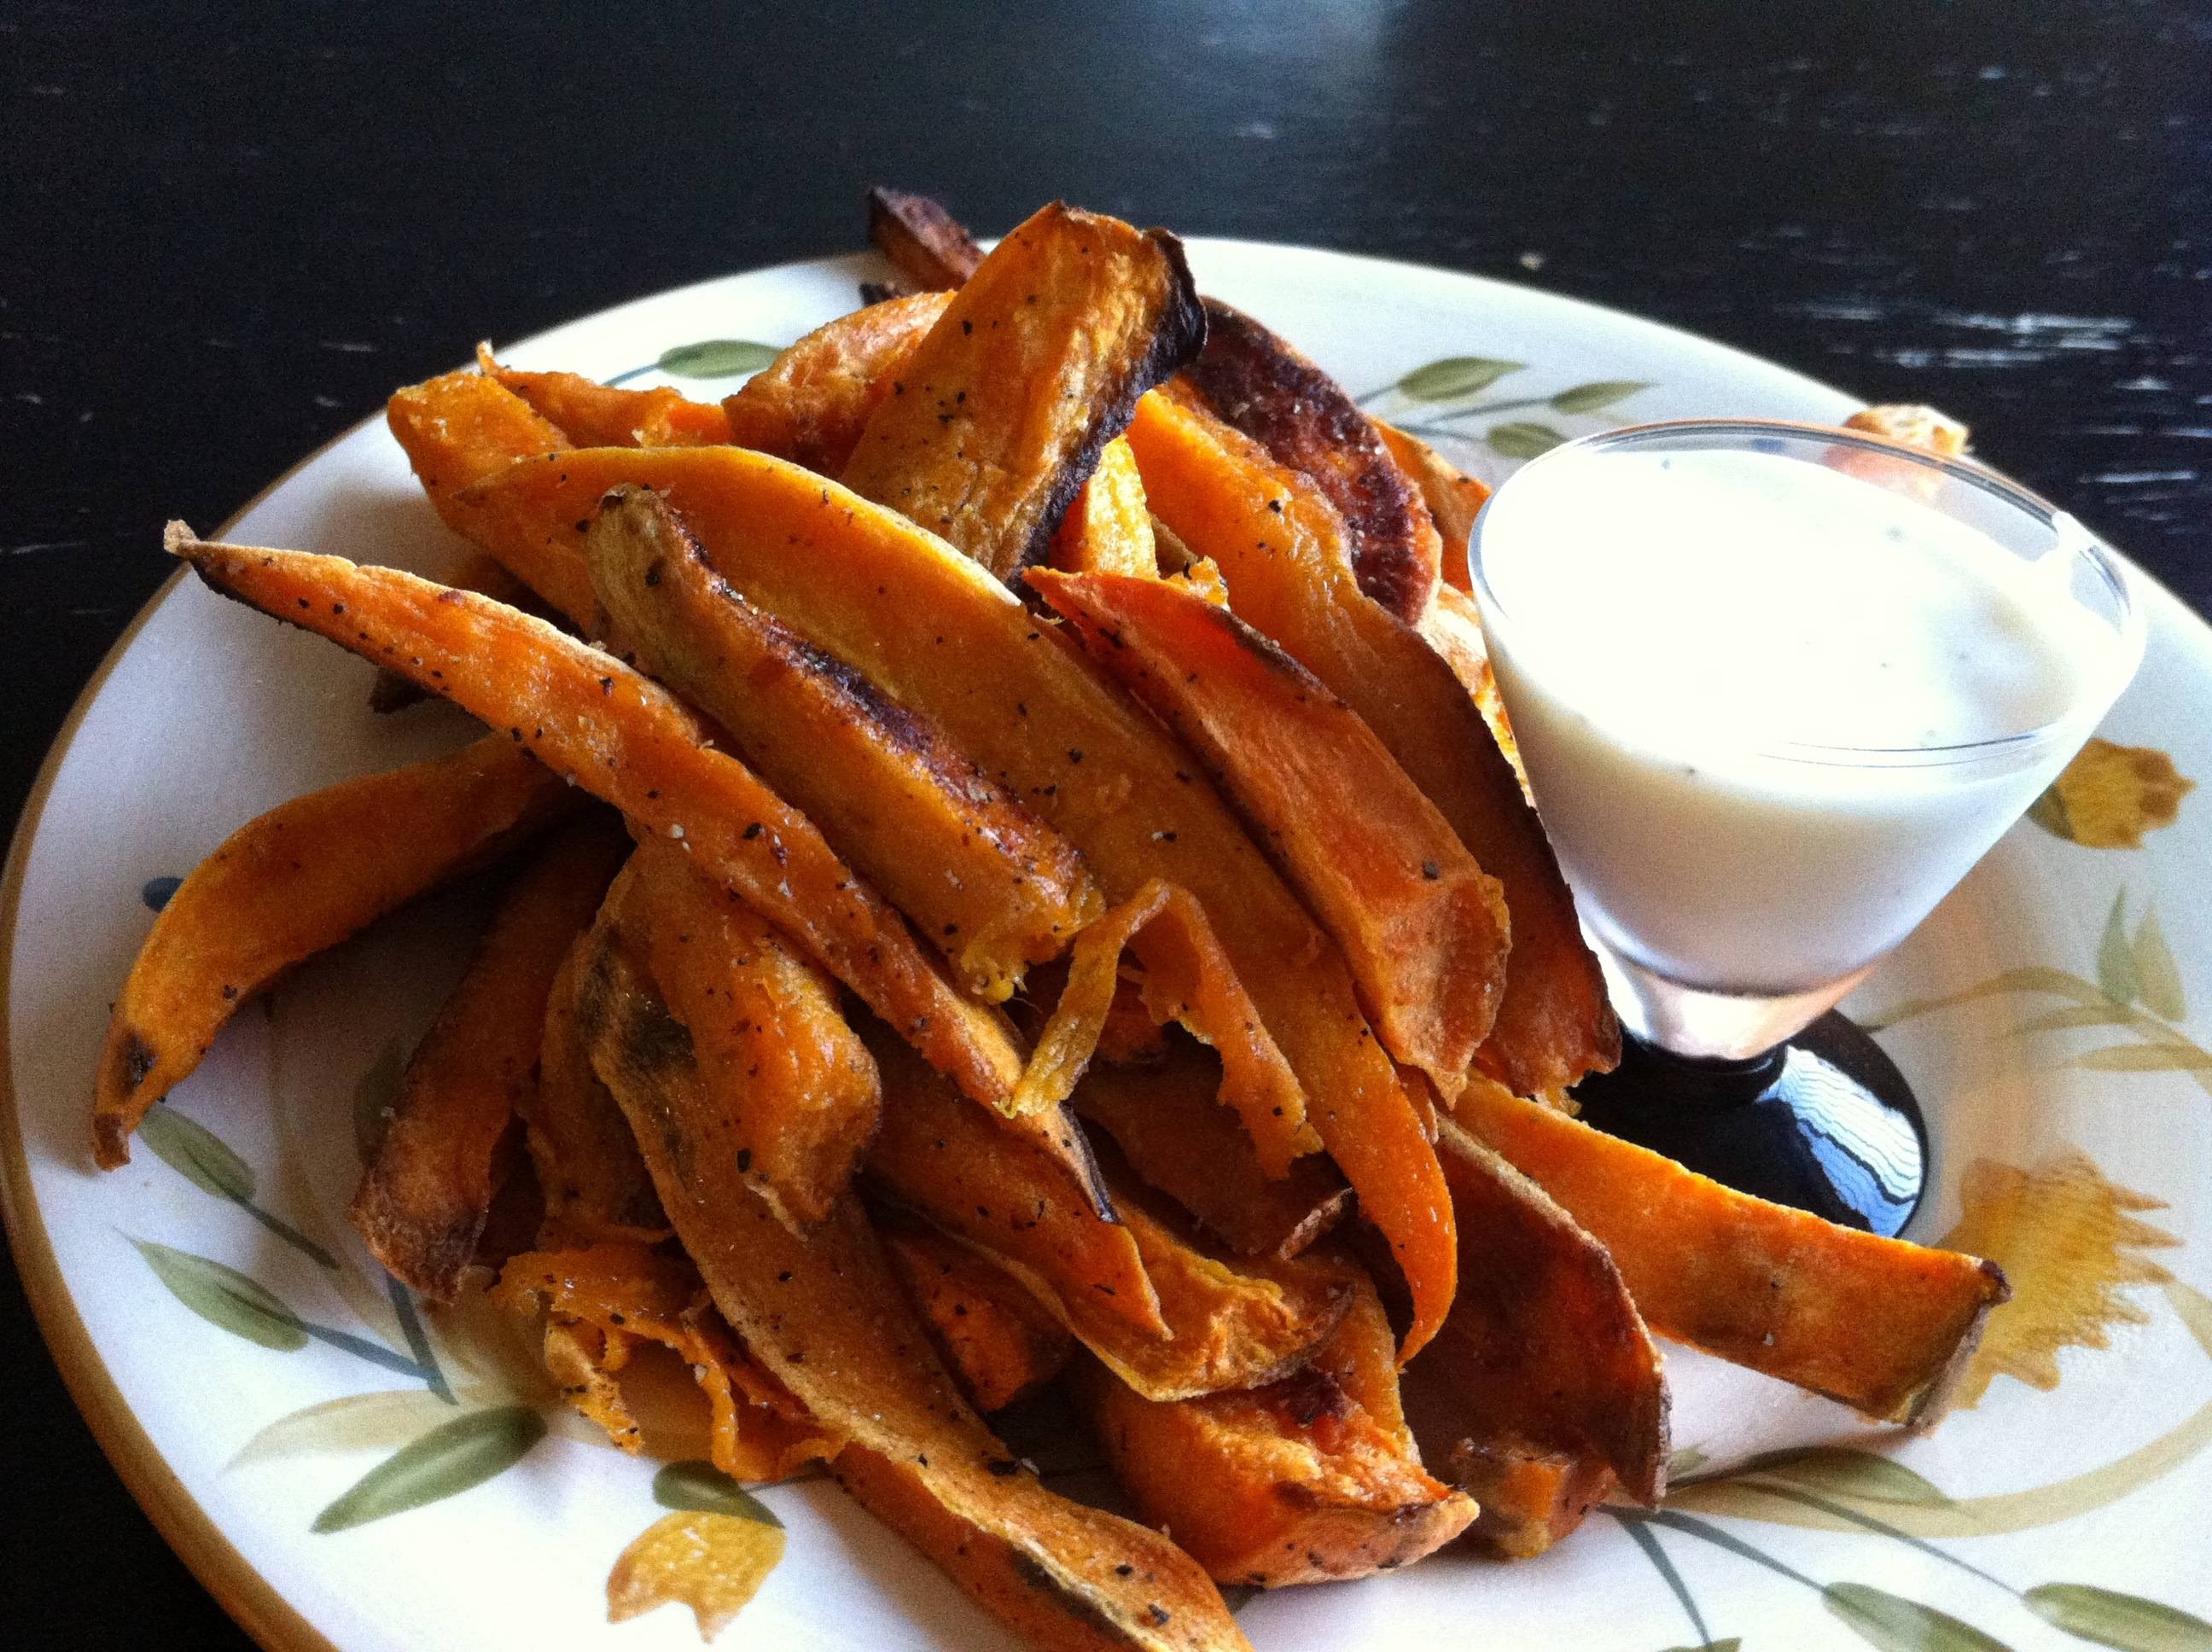 sweet potato fries and sauce